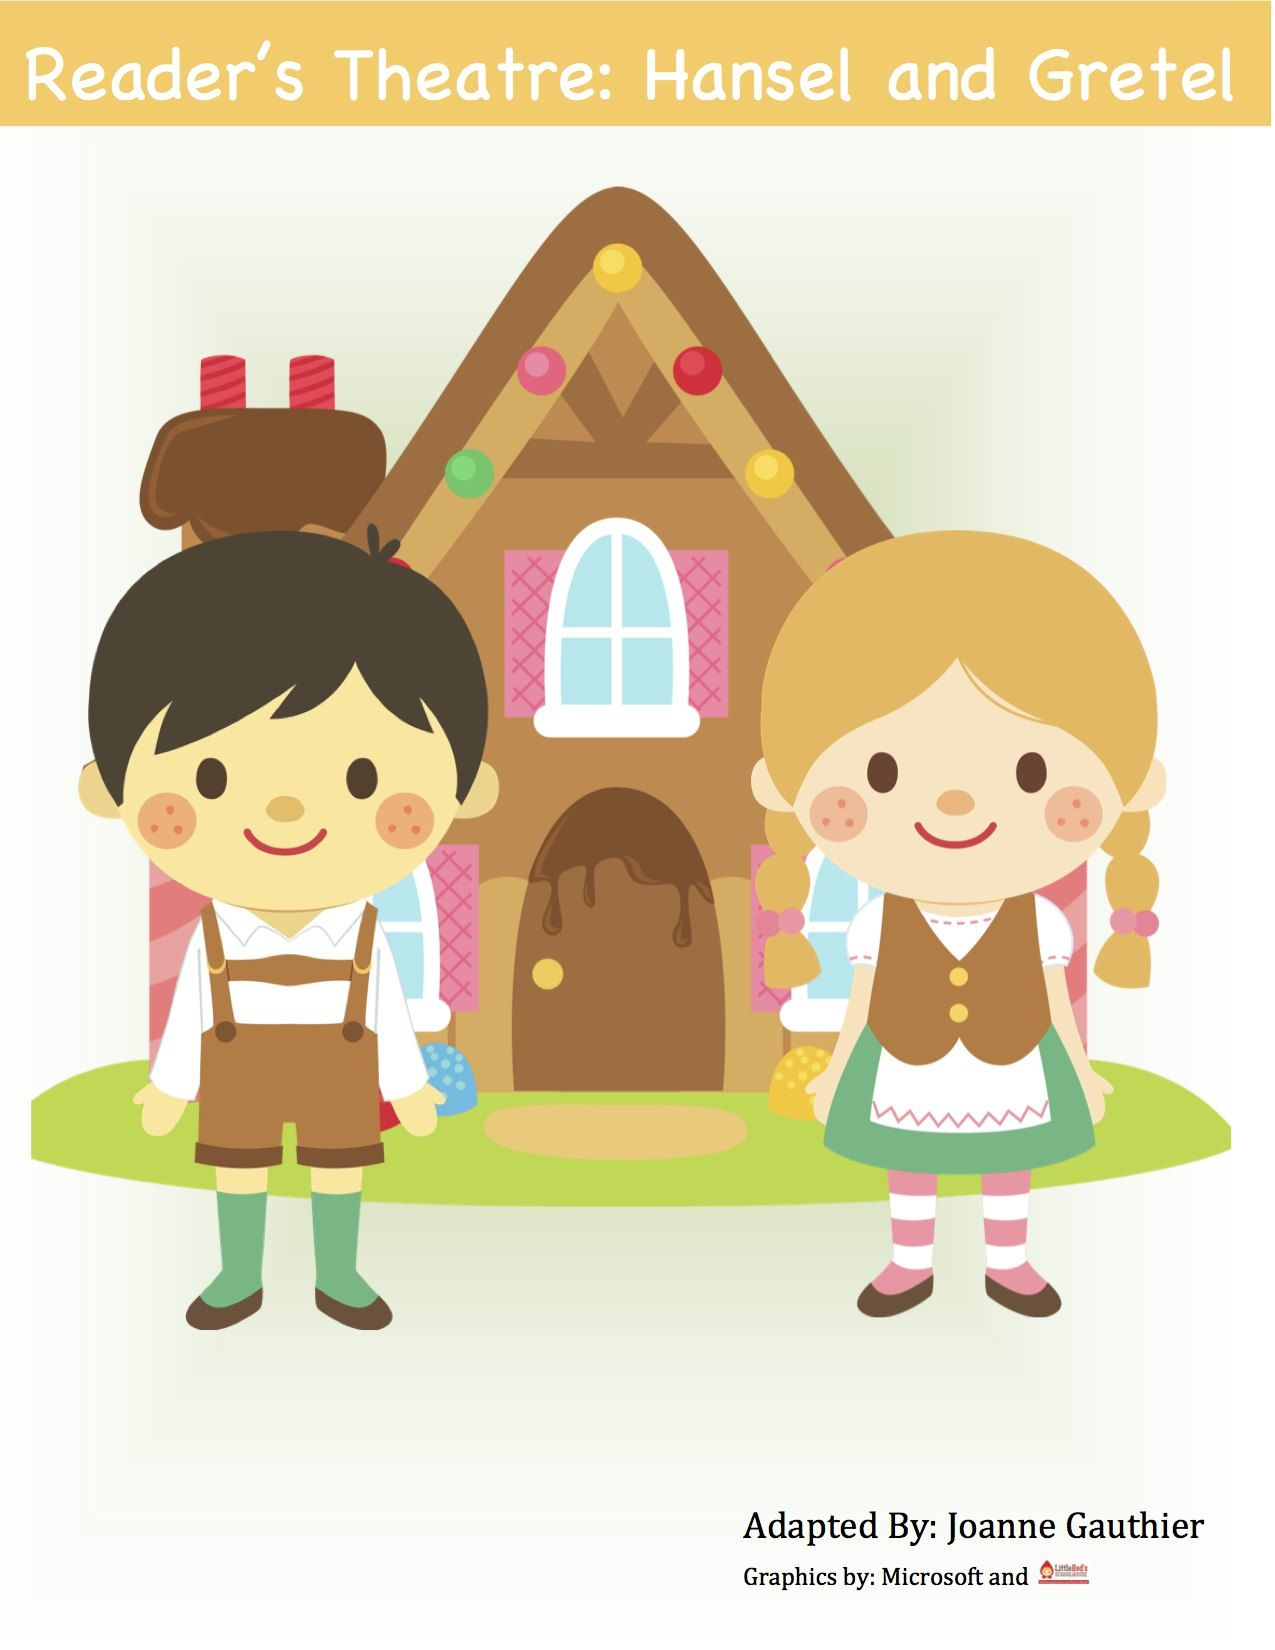 Hansel And Gretel Reader S Theatre For Grades 1 And 2 Readers Theater Fairy Tales Stories For Kids